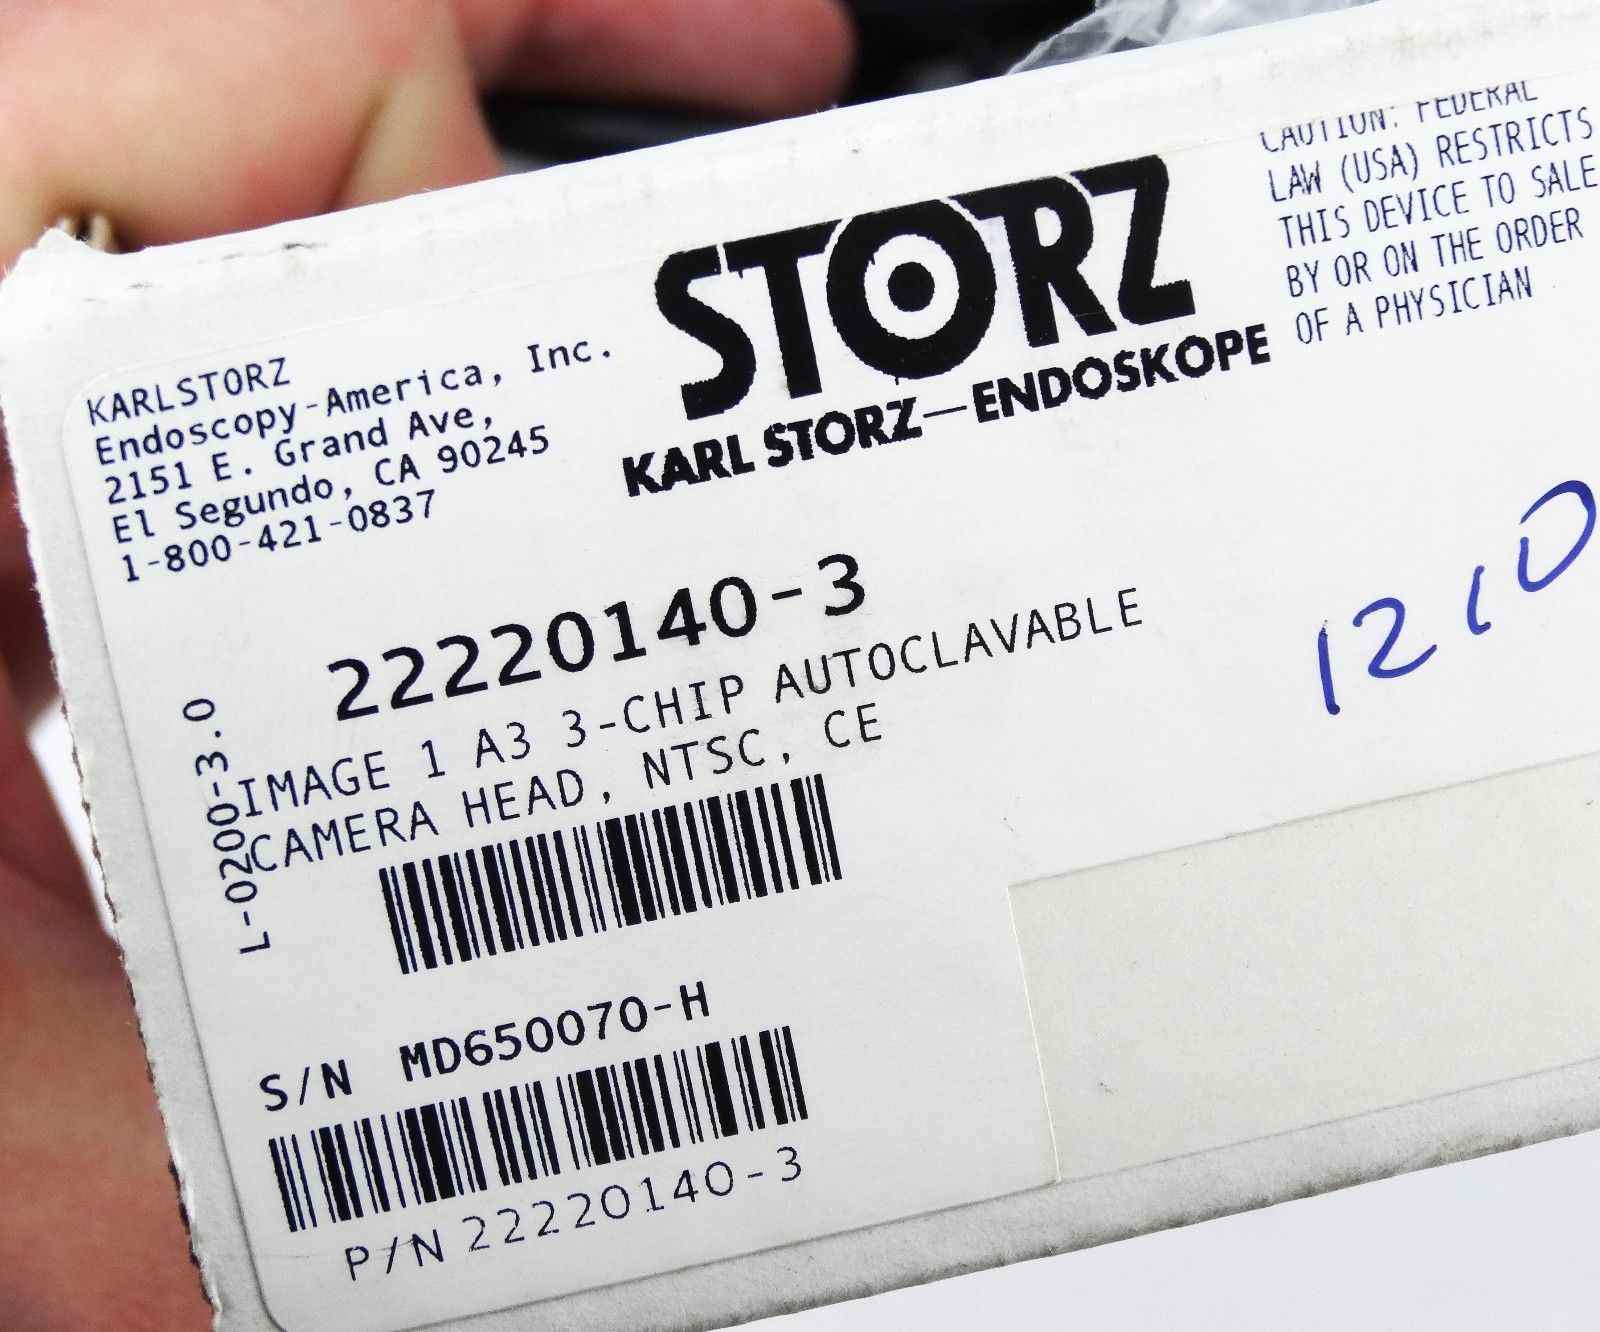 Karl Storz Image1 Autoclave A3 Camera Head 3chip 22220140 NTSC Endoscopy  ENT *USED*